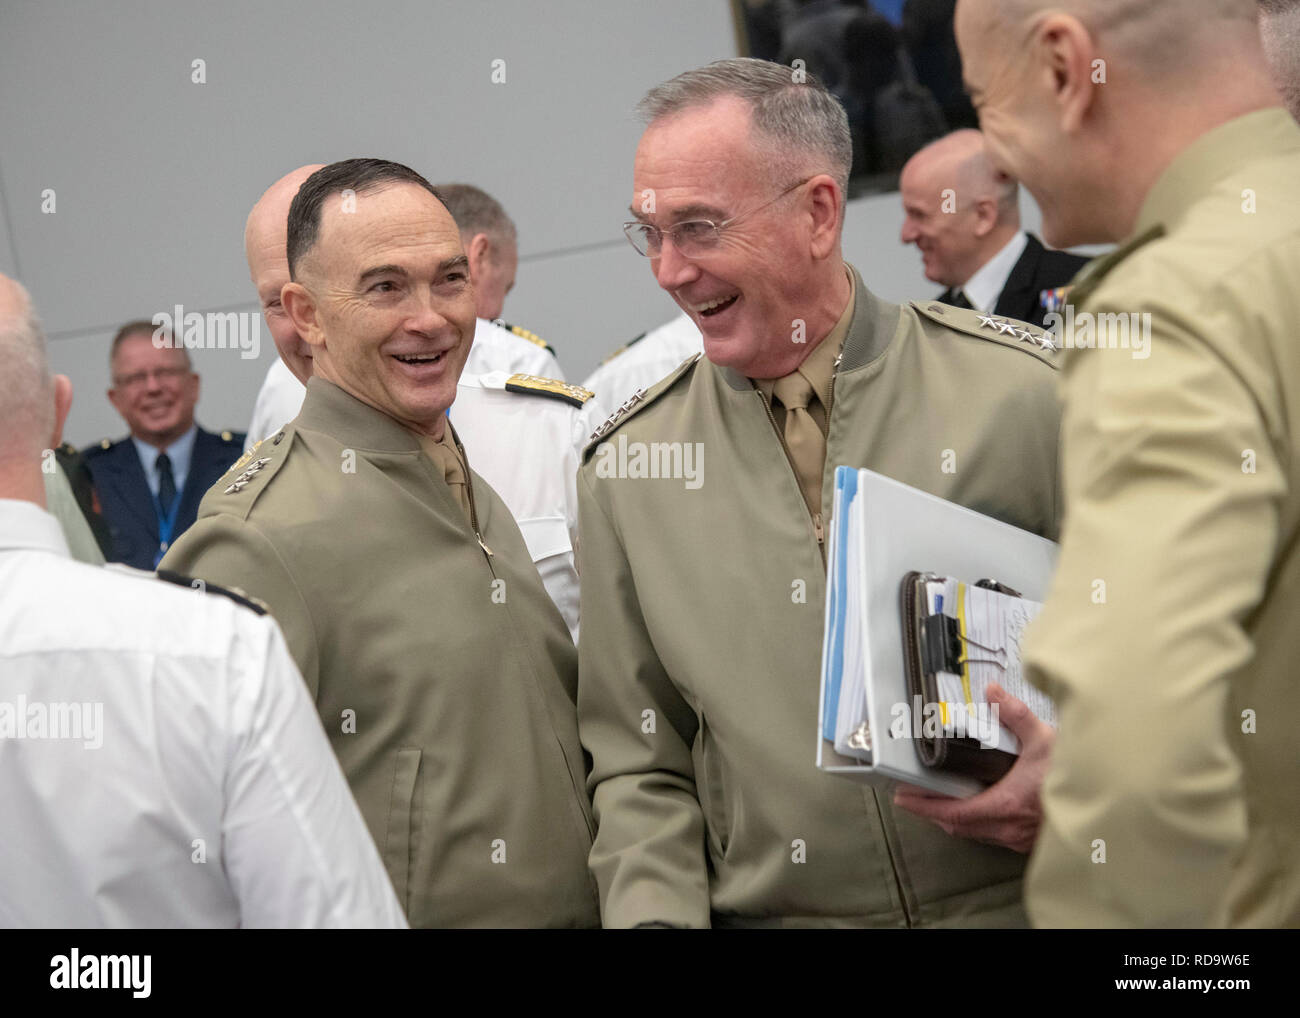 Marine Corps Gen. Joe Dunford, chairman of the Joint Chiefs of Staff, attends the 180th North Atlantic Treaty Organization Military Committee in Chiefs of Defense Session (MC/CS) in Brussels, Belgium, Jan. 16, 2019. (DOD photo by Navy Petty Officer 1st Class Dominique A. Pineiro) Stock Photo